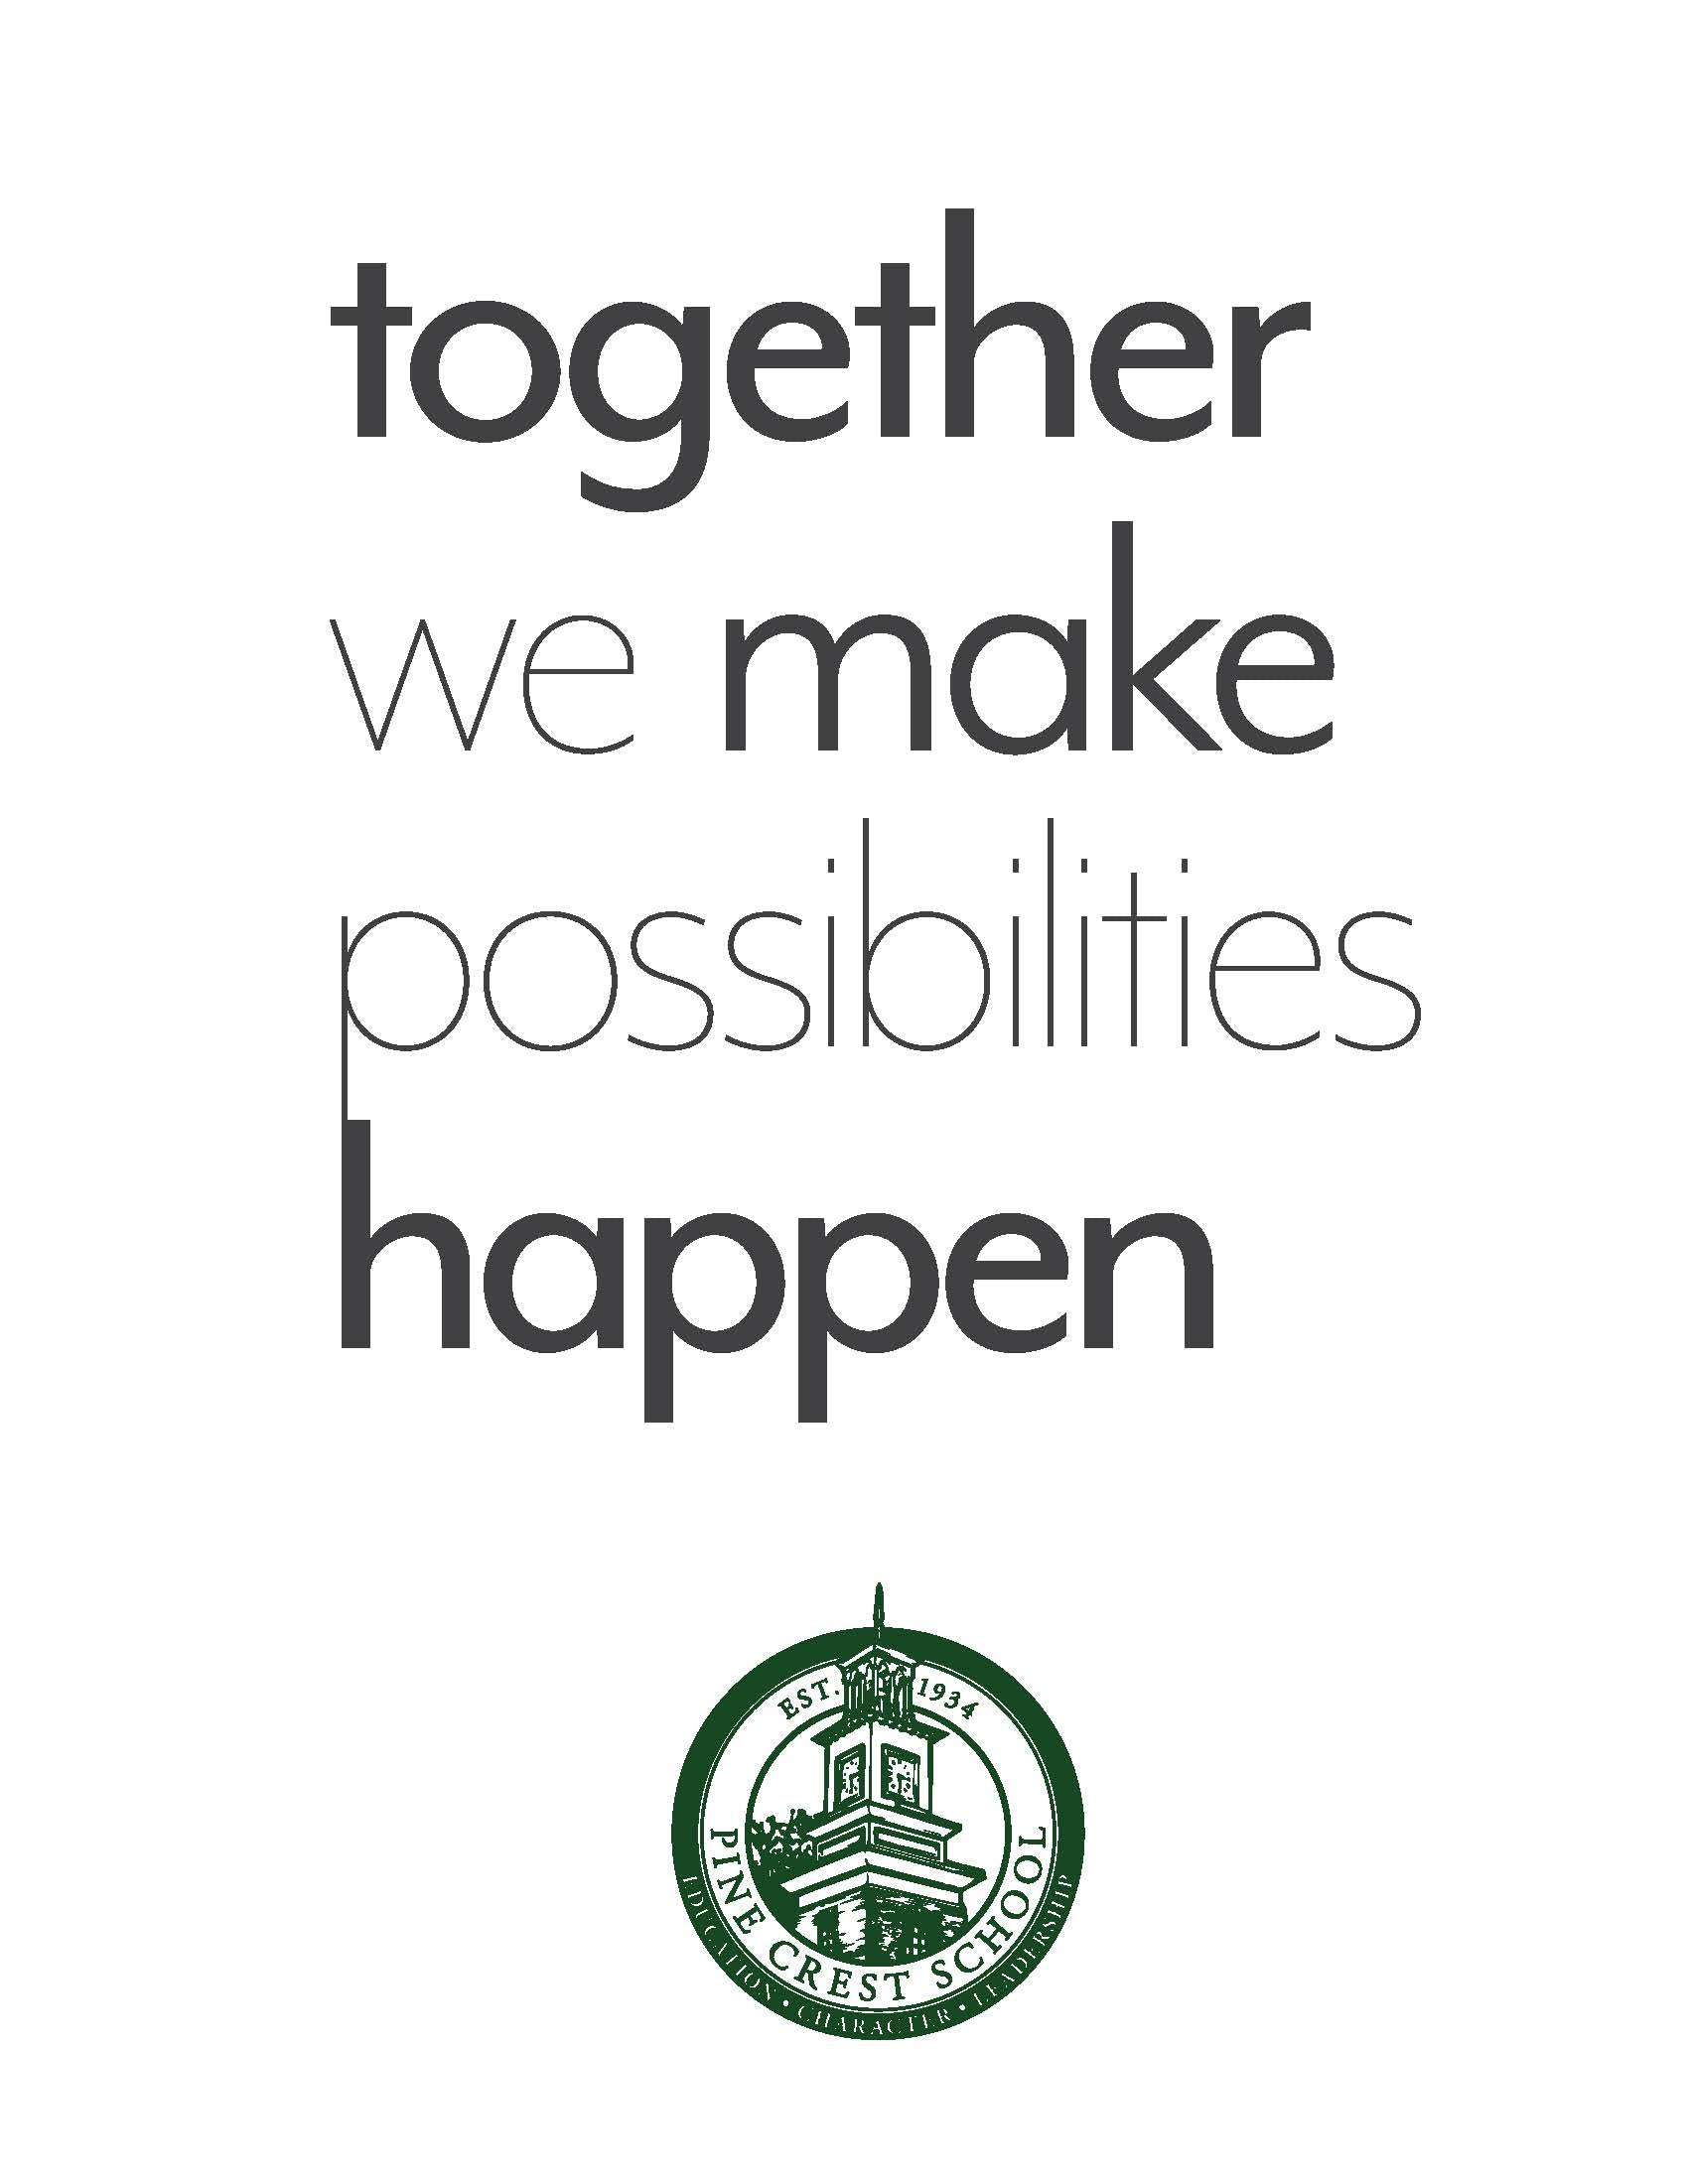 Pine Crest School 2017-18 Fundraising Campaign Ask Donors